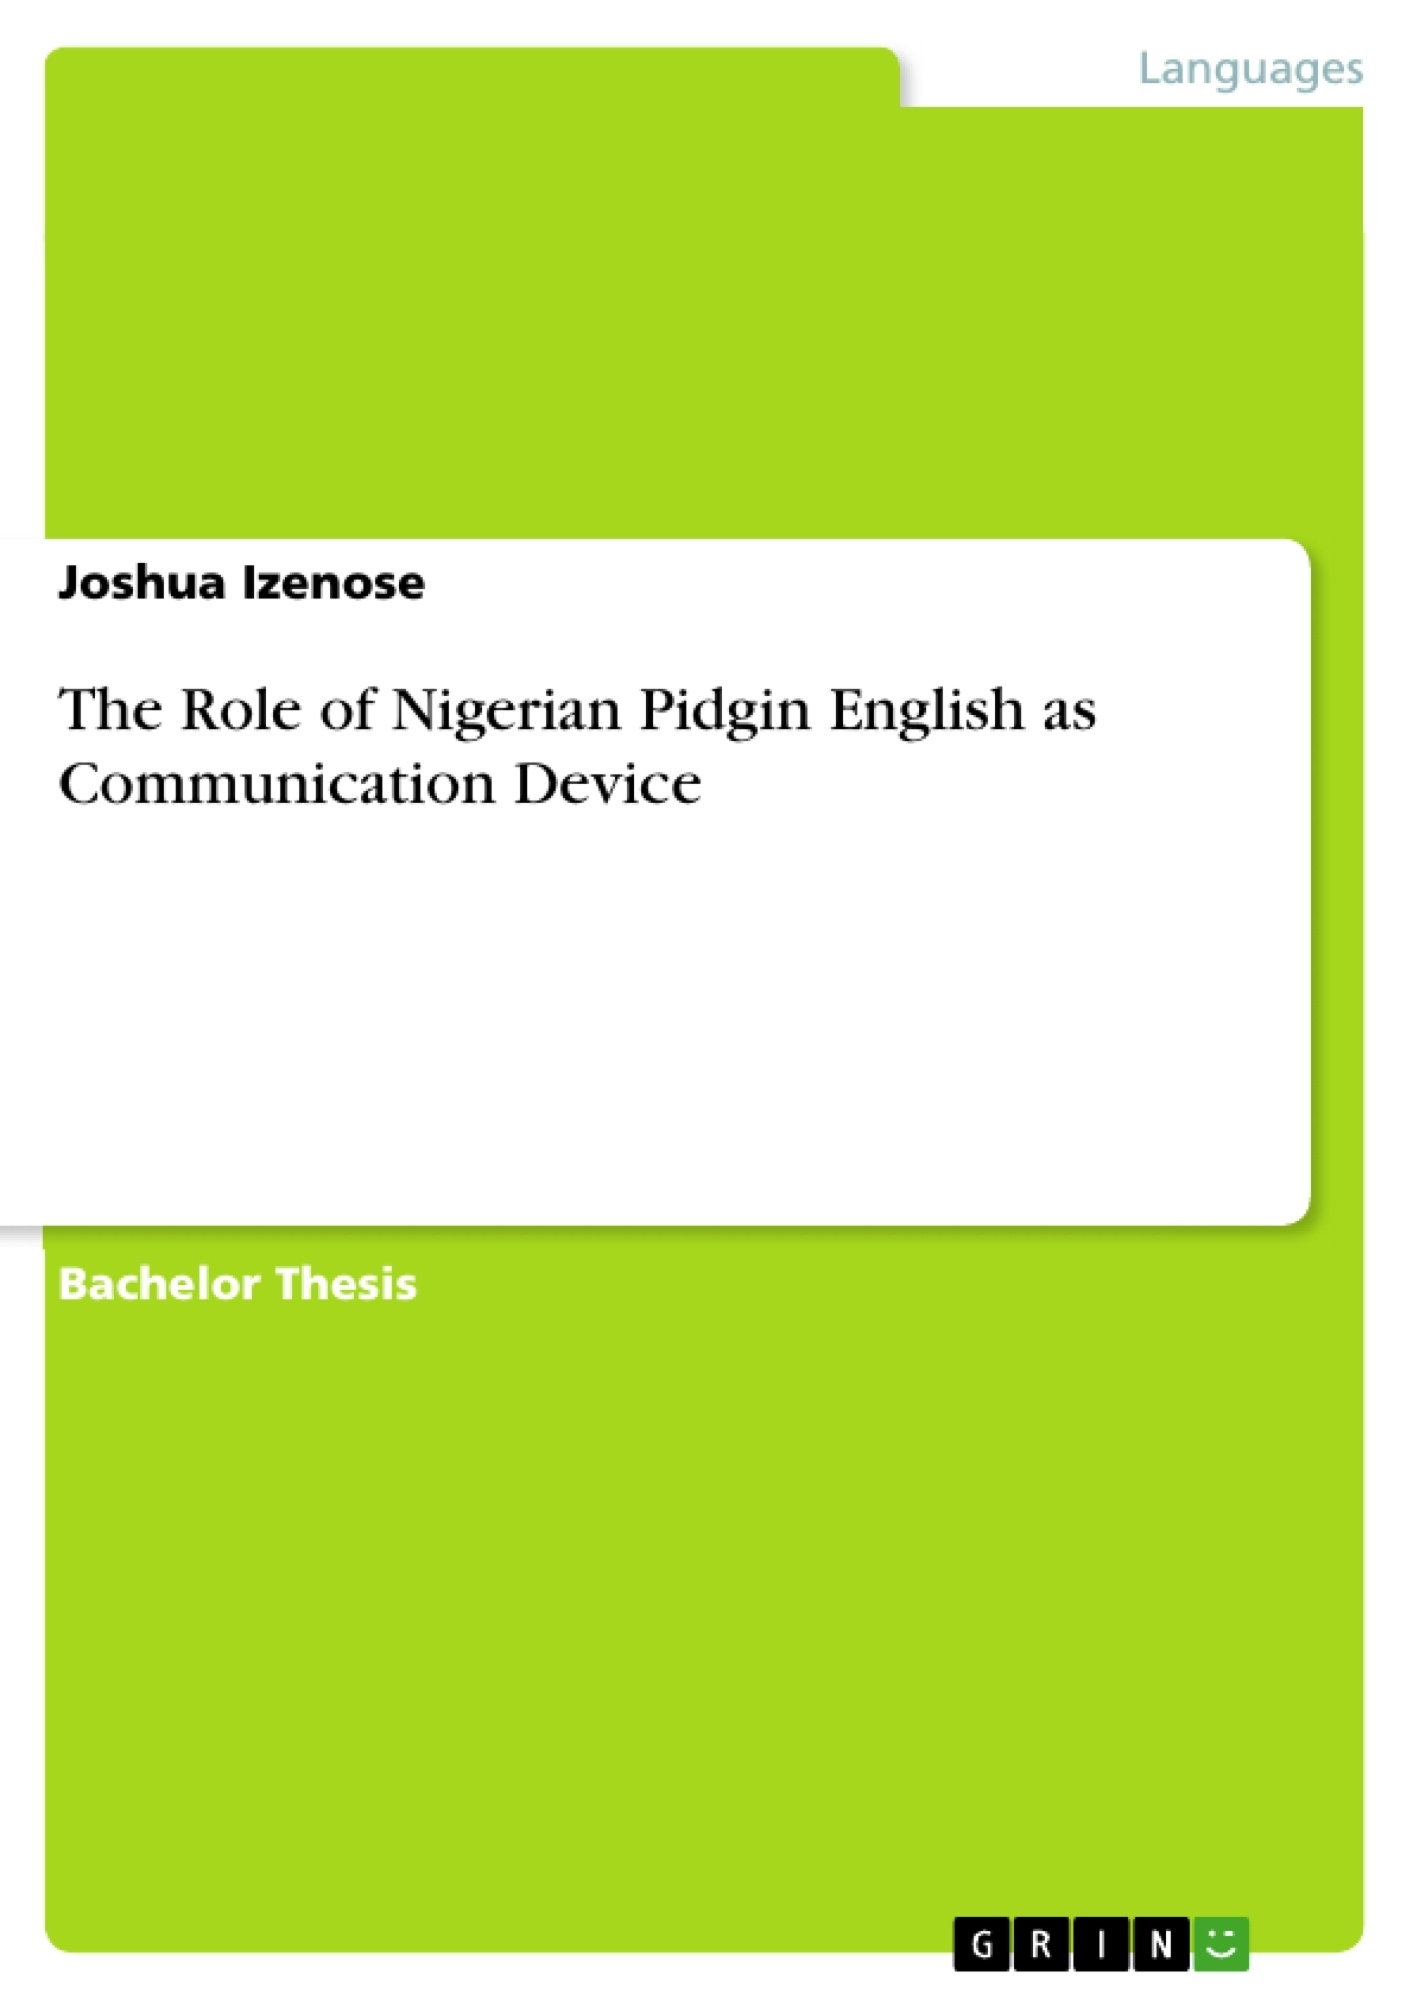 Title: The Role of Nigerian Pidgin English as Communication Device